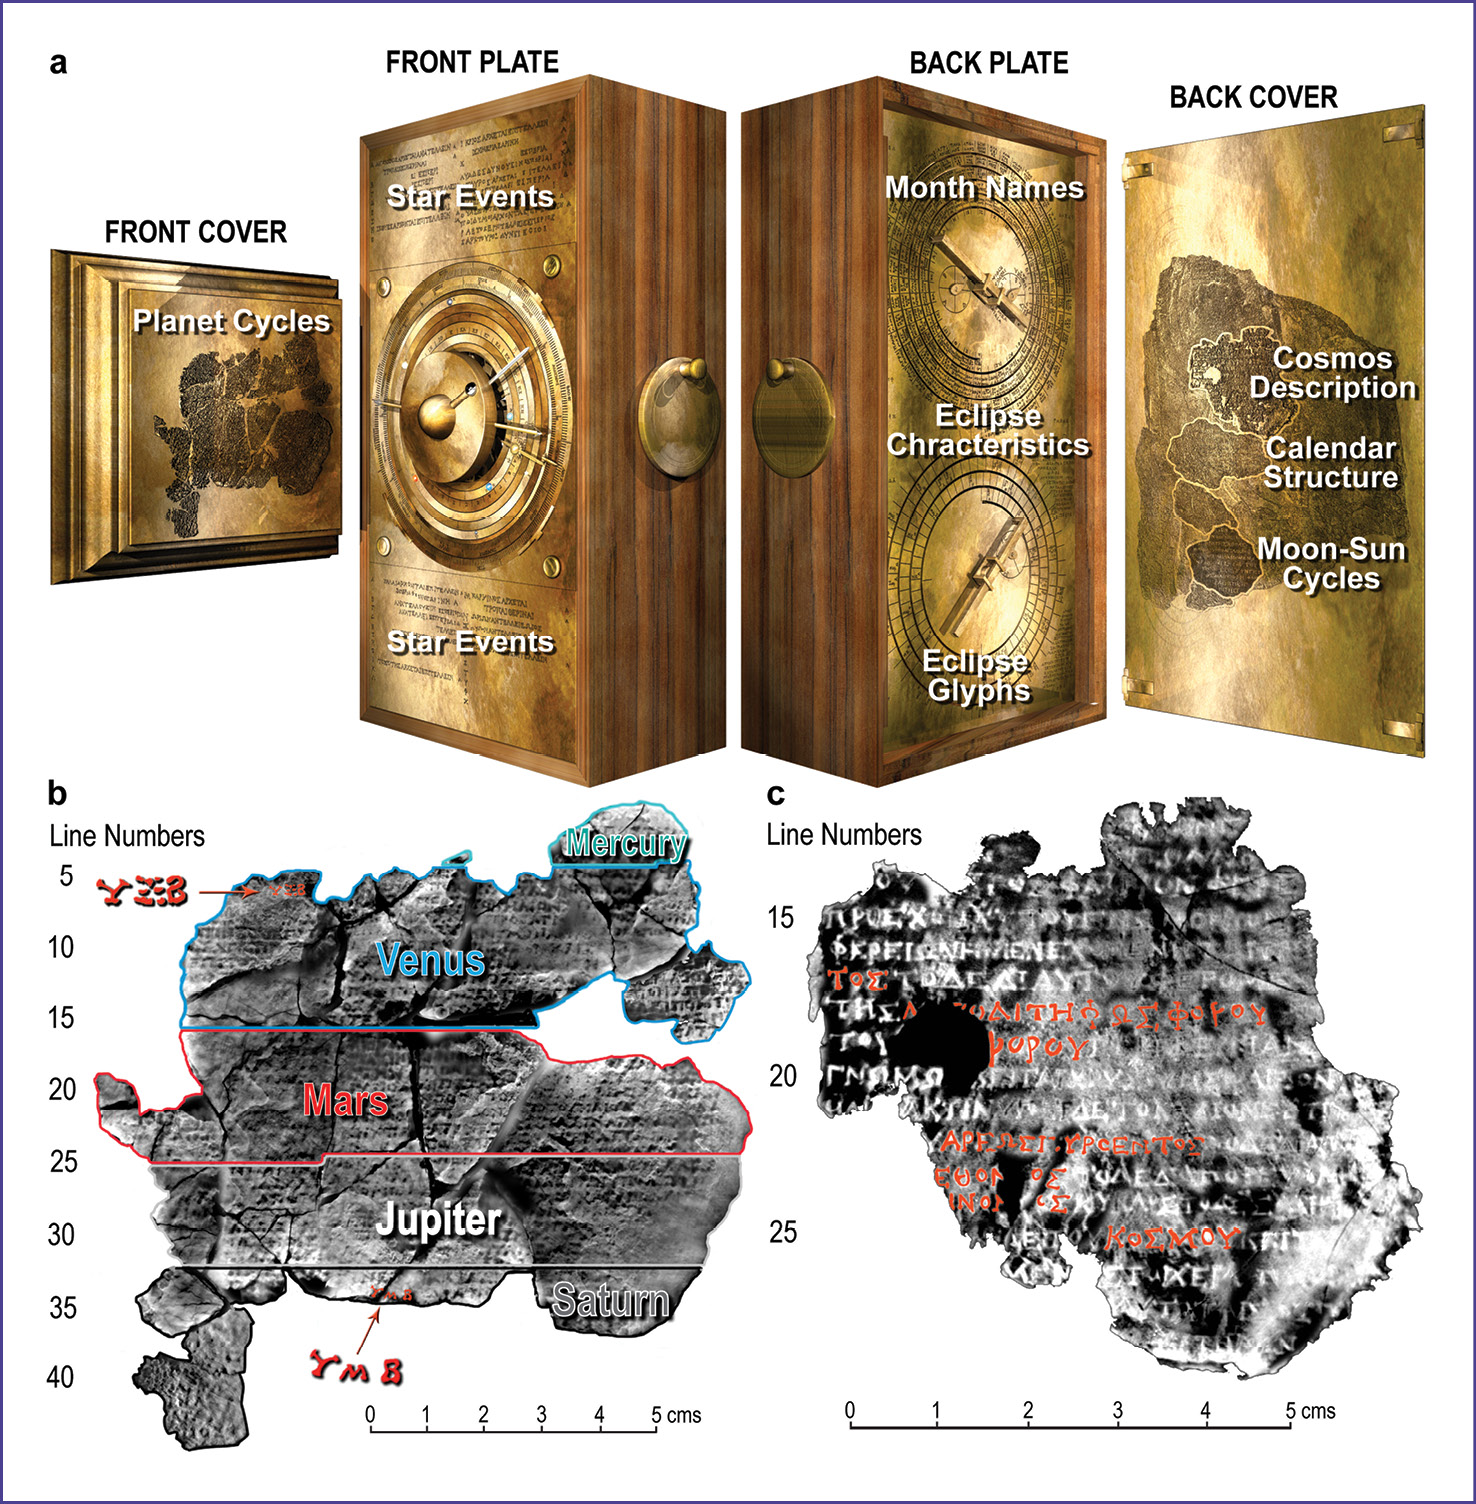 RIGHT A key result of the 2005 work was an ability to read newly visible texts, including elements of the front and back covers of the Mechanism. Here we see: (a) an exploded computer model of the Antikythera Mechanism; (b) an X-ray CT of the front cover Inscription, showing how it is divided into planets and highlighting the numbers 462 for Venus and 442 for Saturn; (c) an X-ray CT of the back cover Inscription, describing how the Cosmos display is arranged in rings.